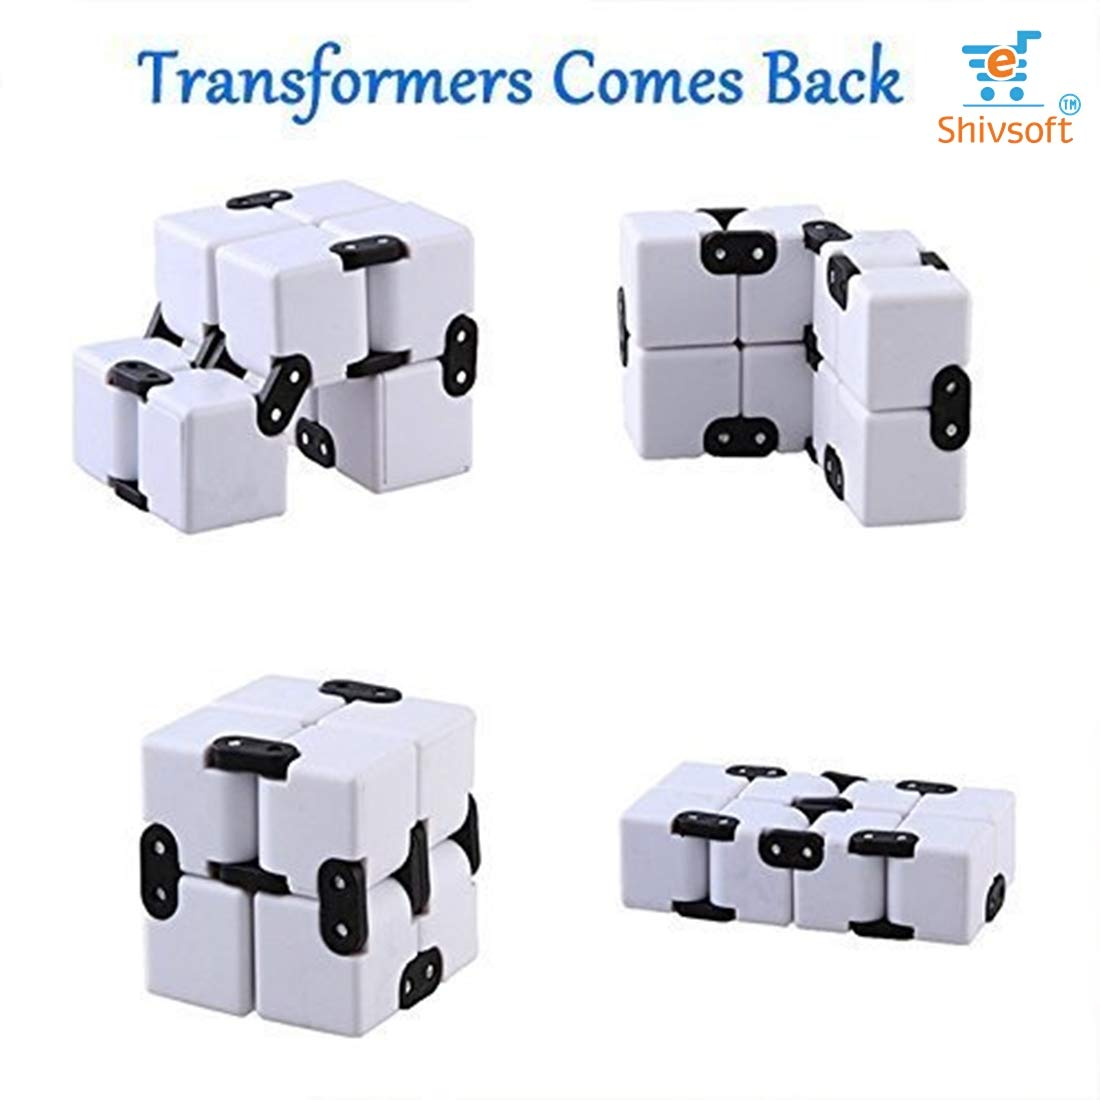 Infinity Cube Puzzle Decompression for Kids and Adults (White) by OK Seller (Image #5)